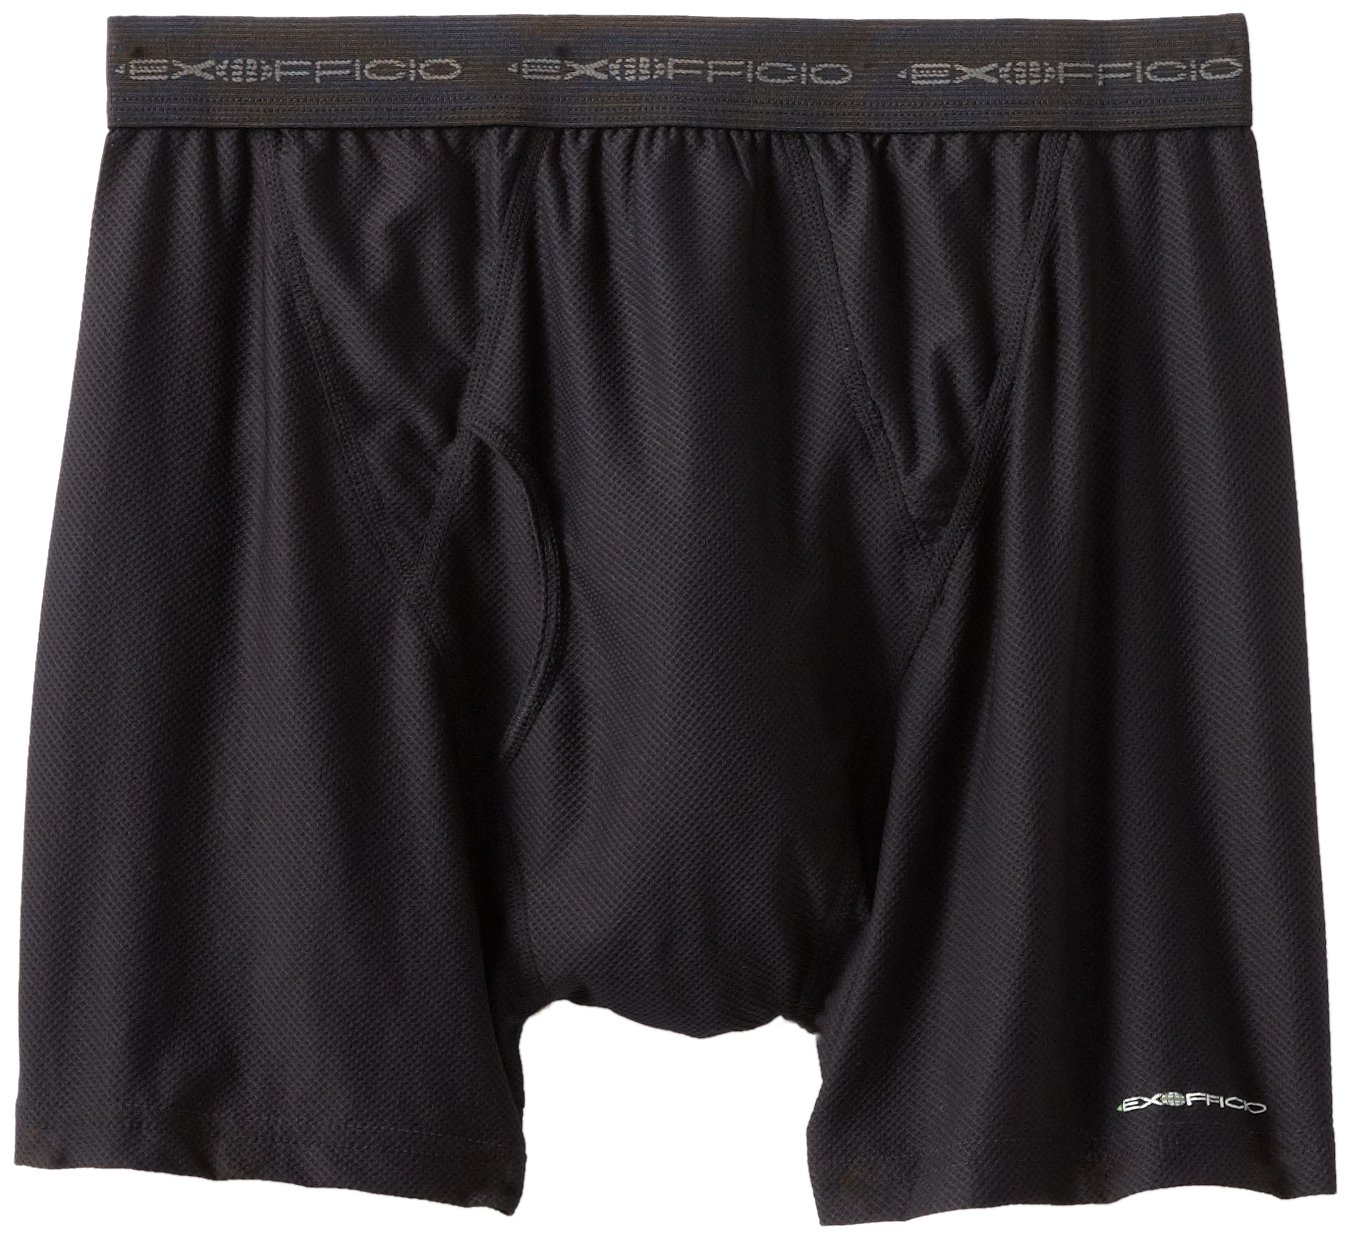 ExOfficio Men's Give-N-Go Boxer Brief,Black,Medium $15.64